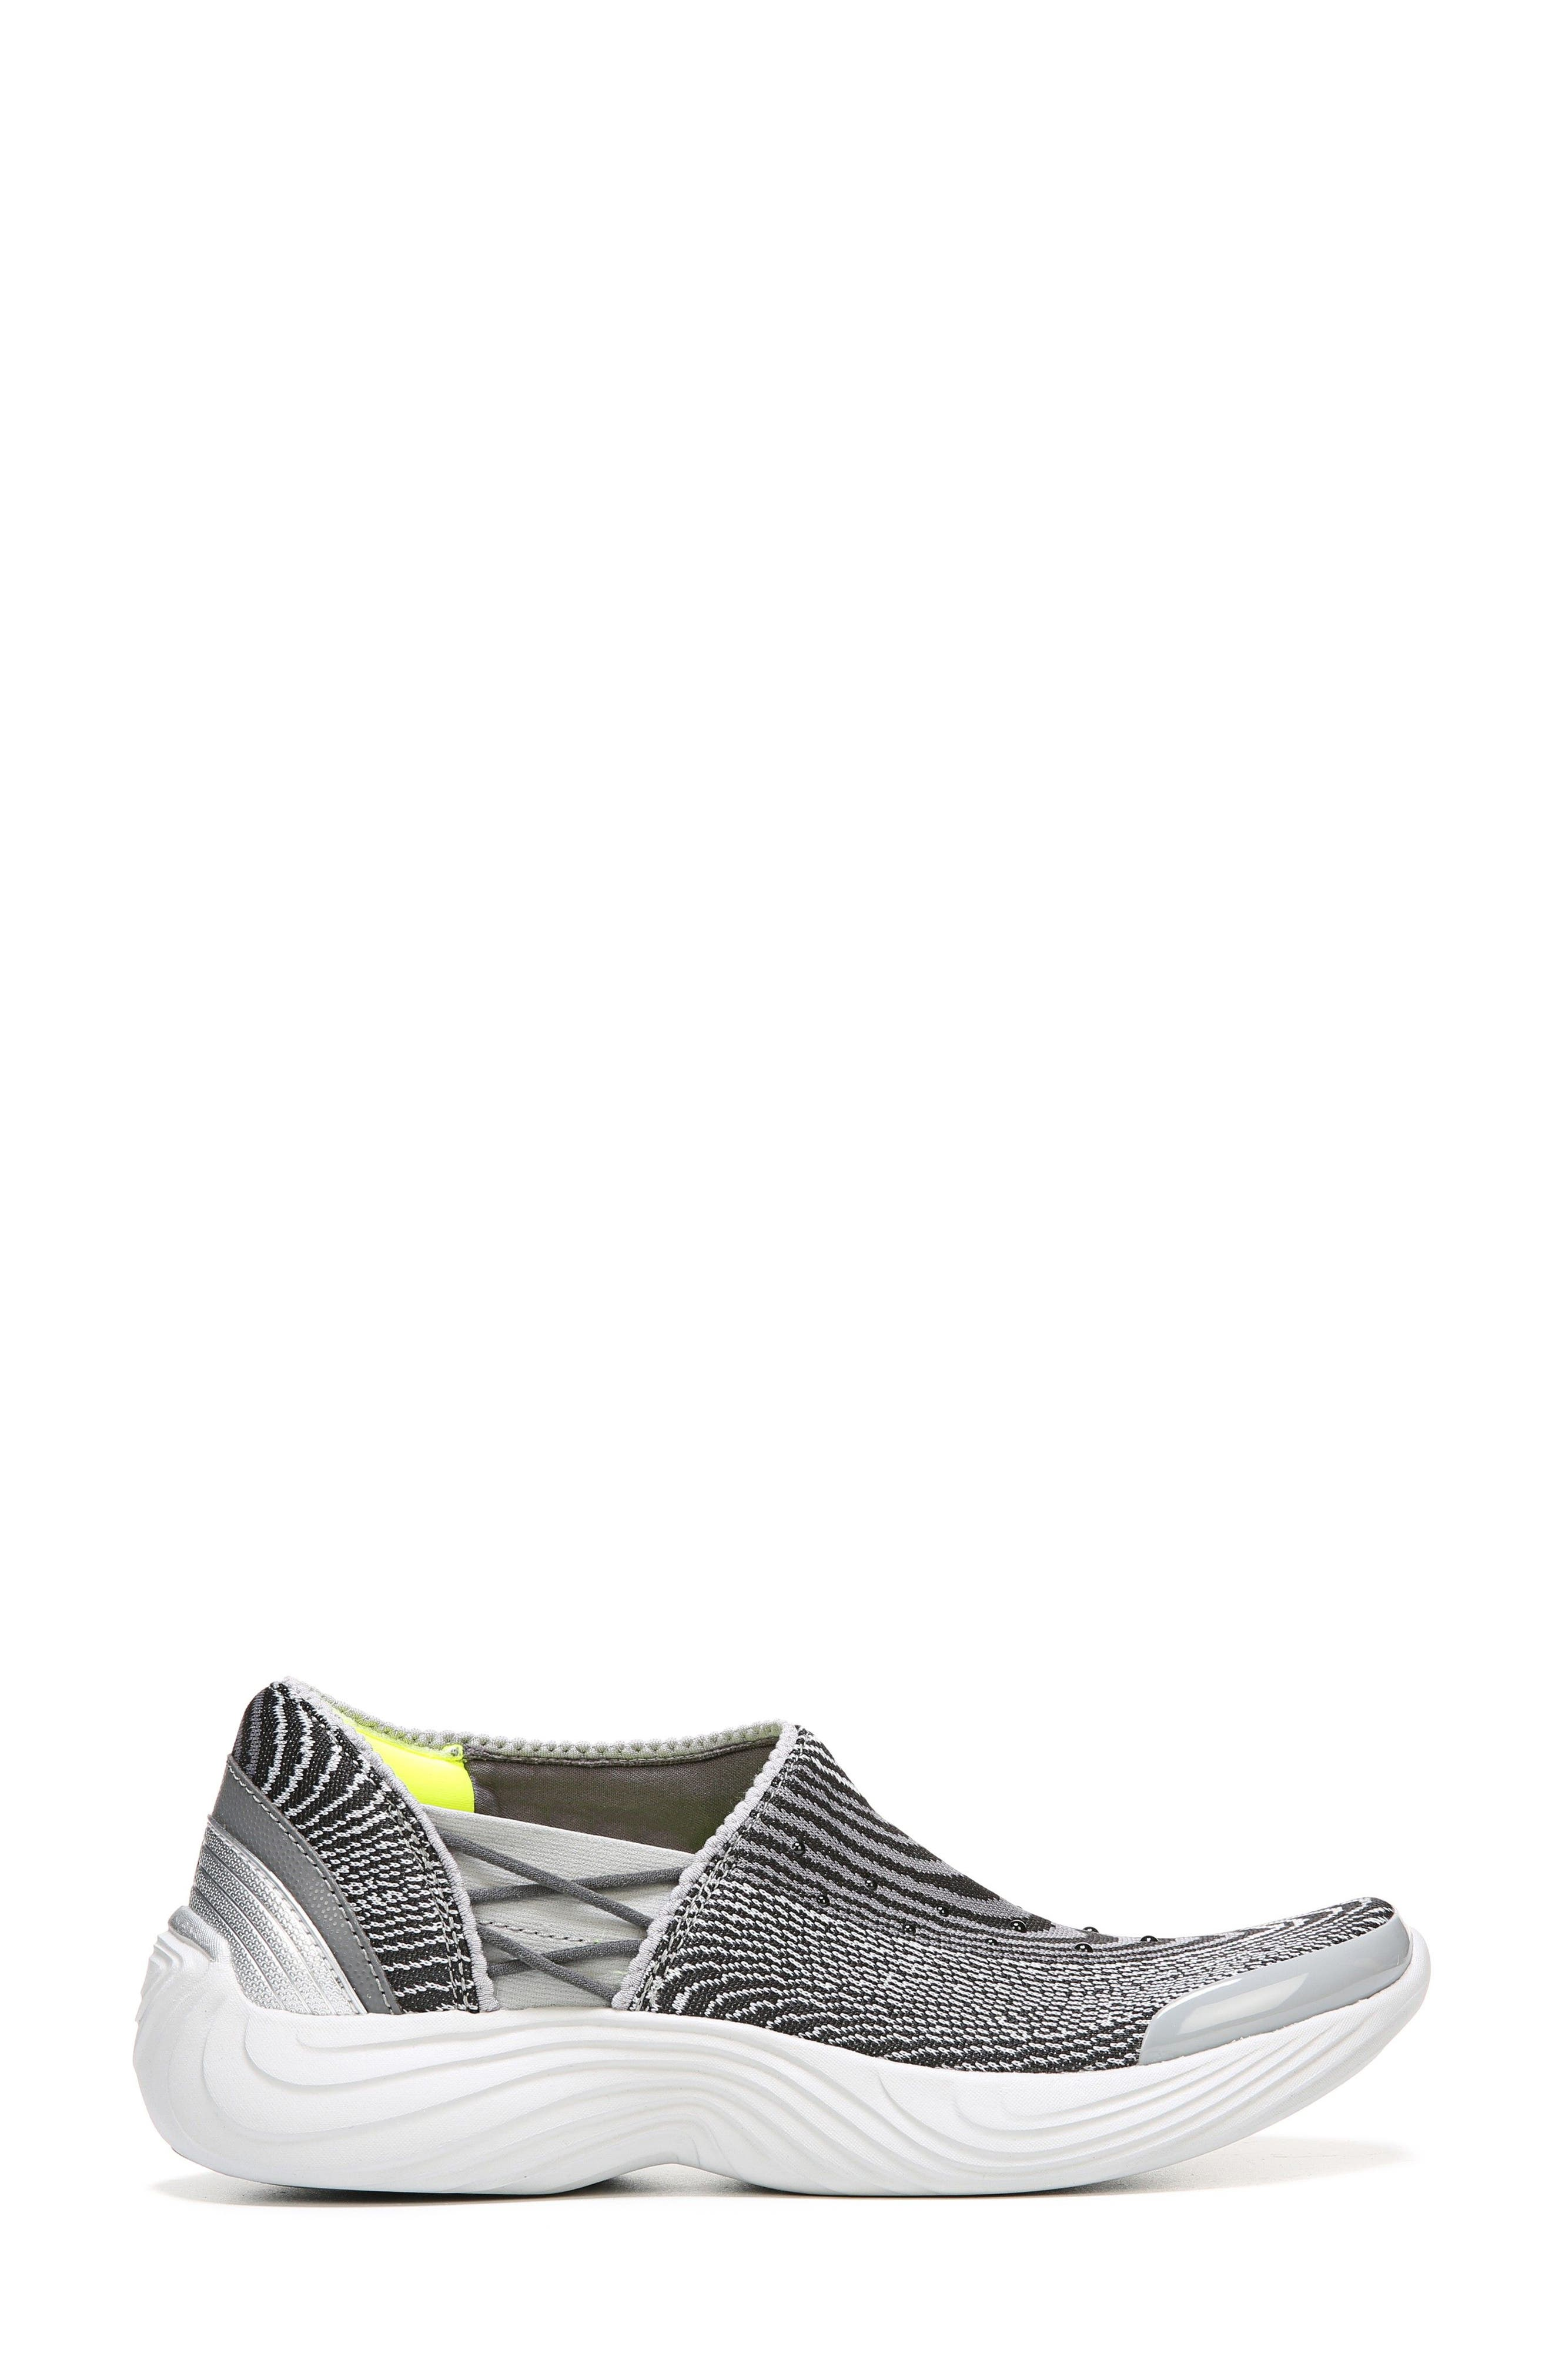 Alternate Image 3  - BZees Tiger Slip-On Sneaker (Women)